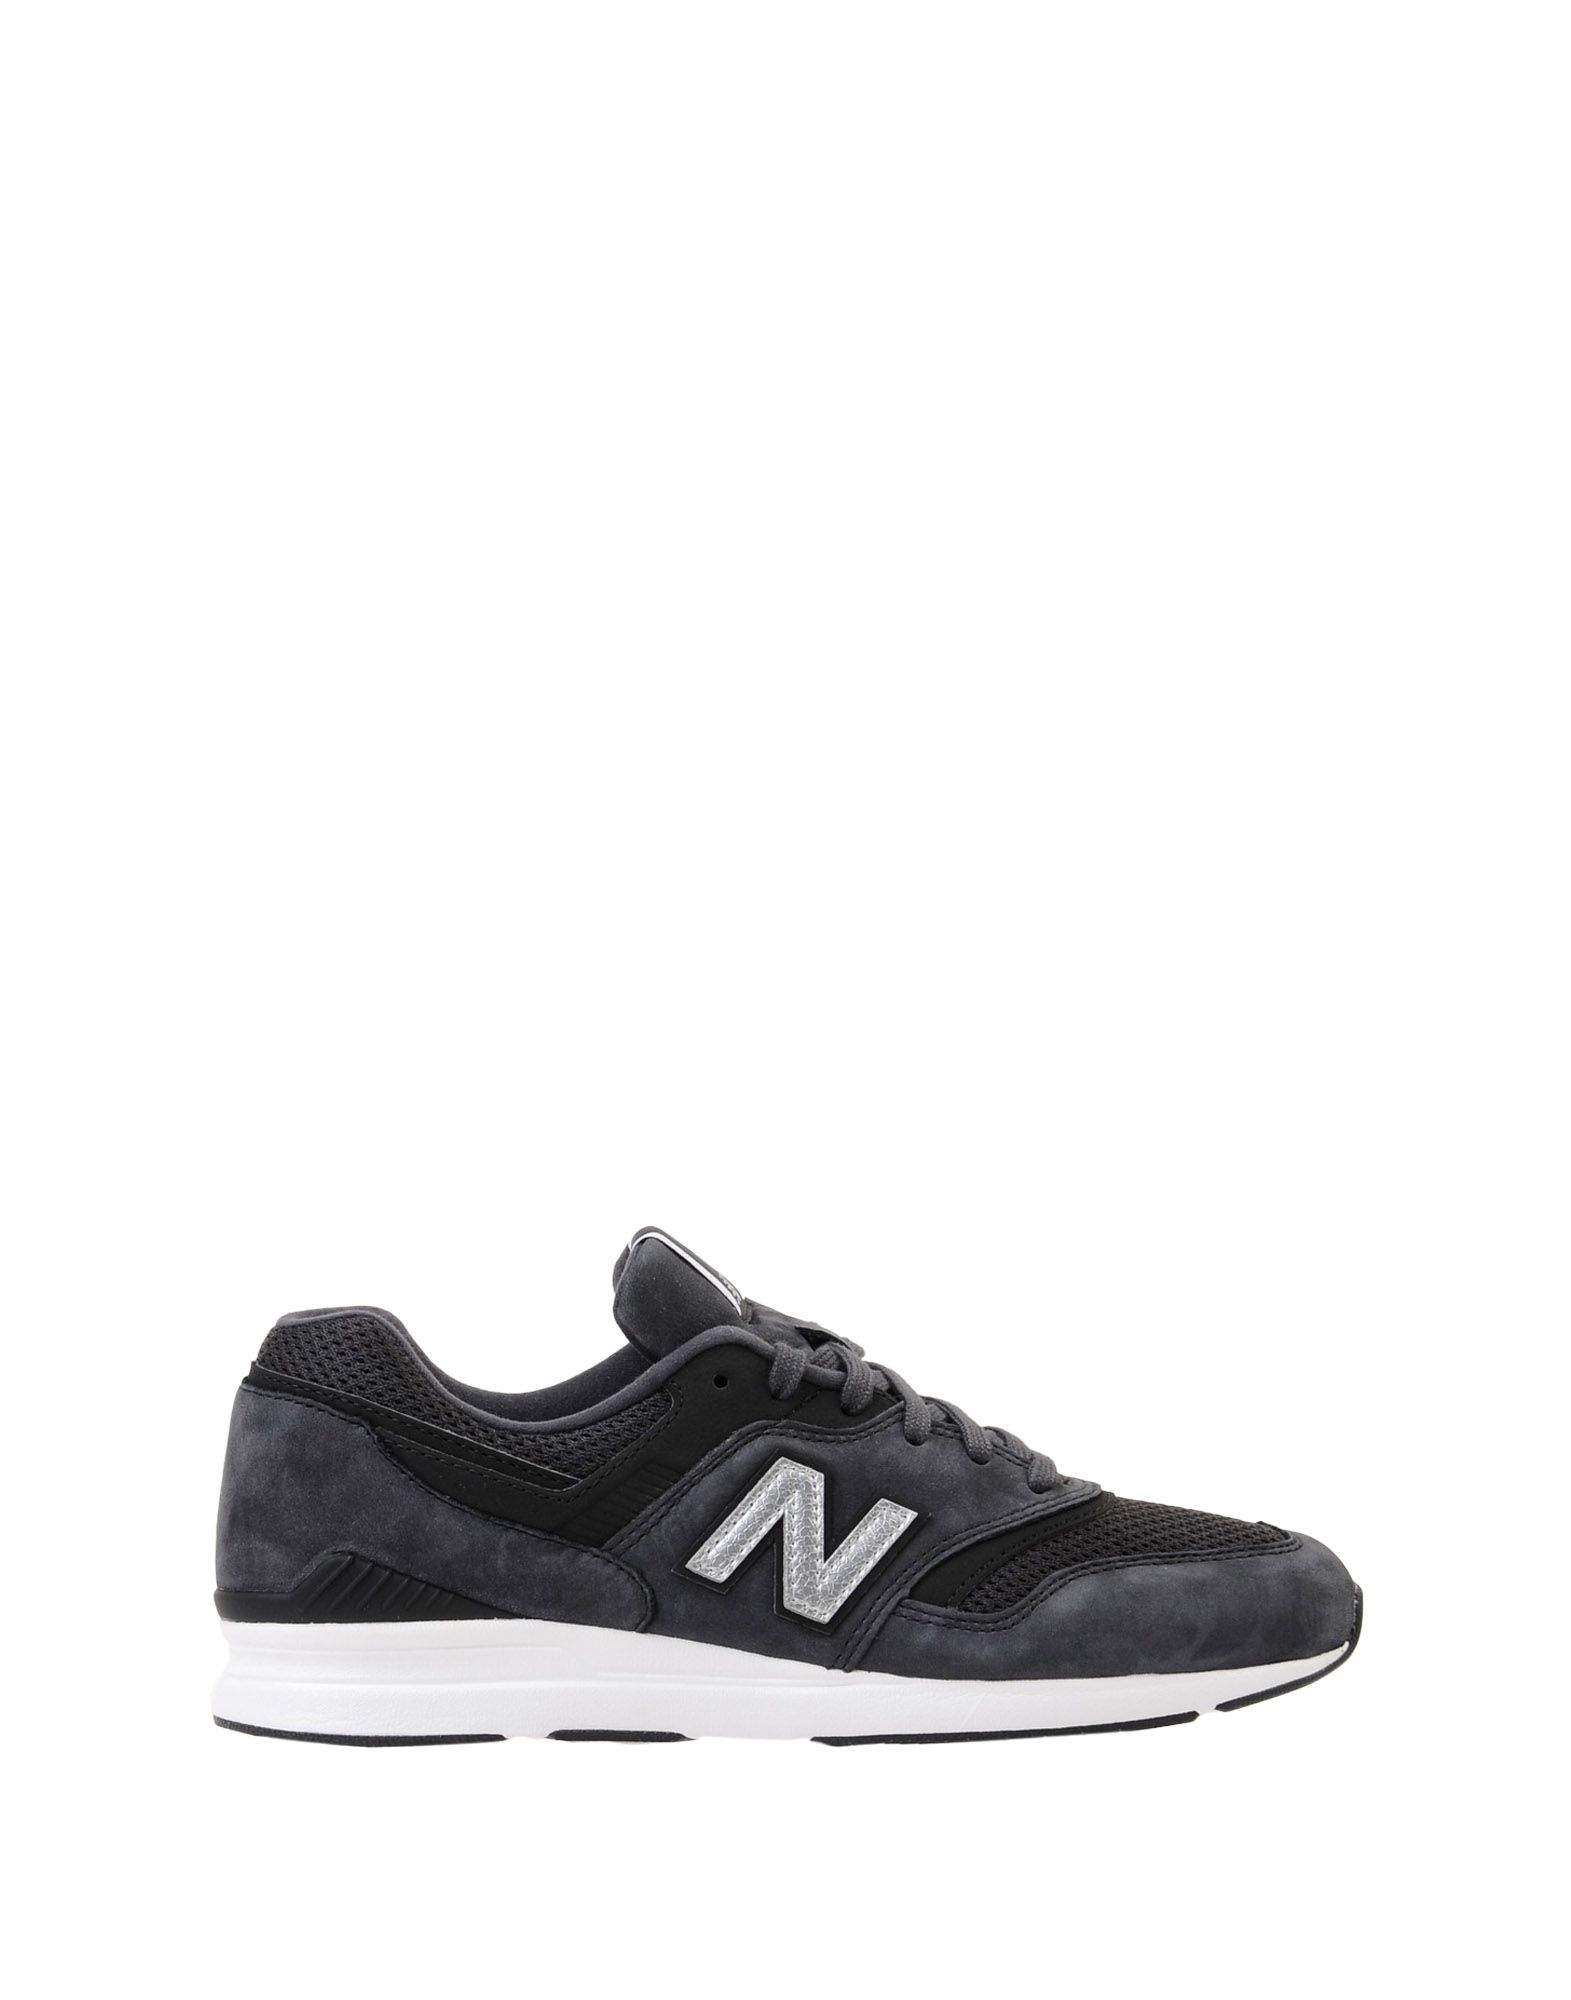 New Balance 697 Tier 2 - Sneakers Sneakers Sneakers - Women New Balance Sneakers online on  United Kingdom - 11466865GG 84b144